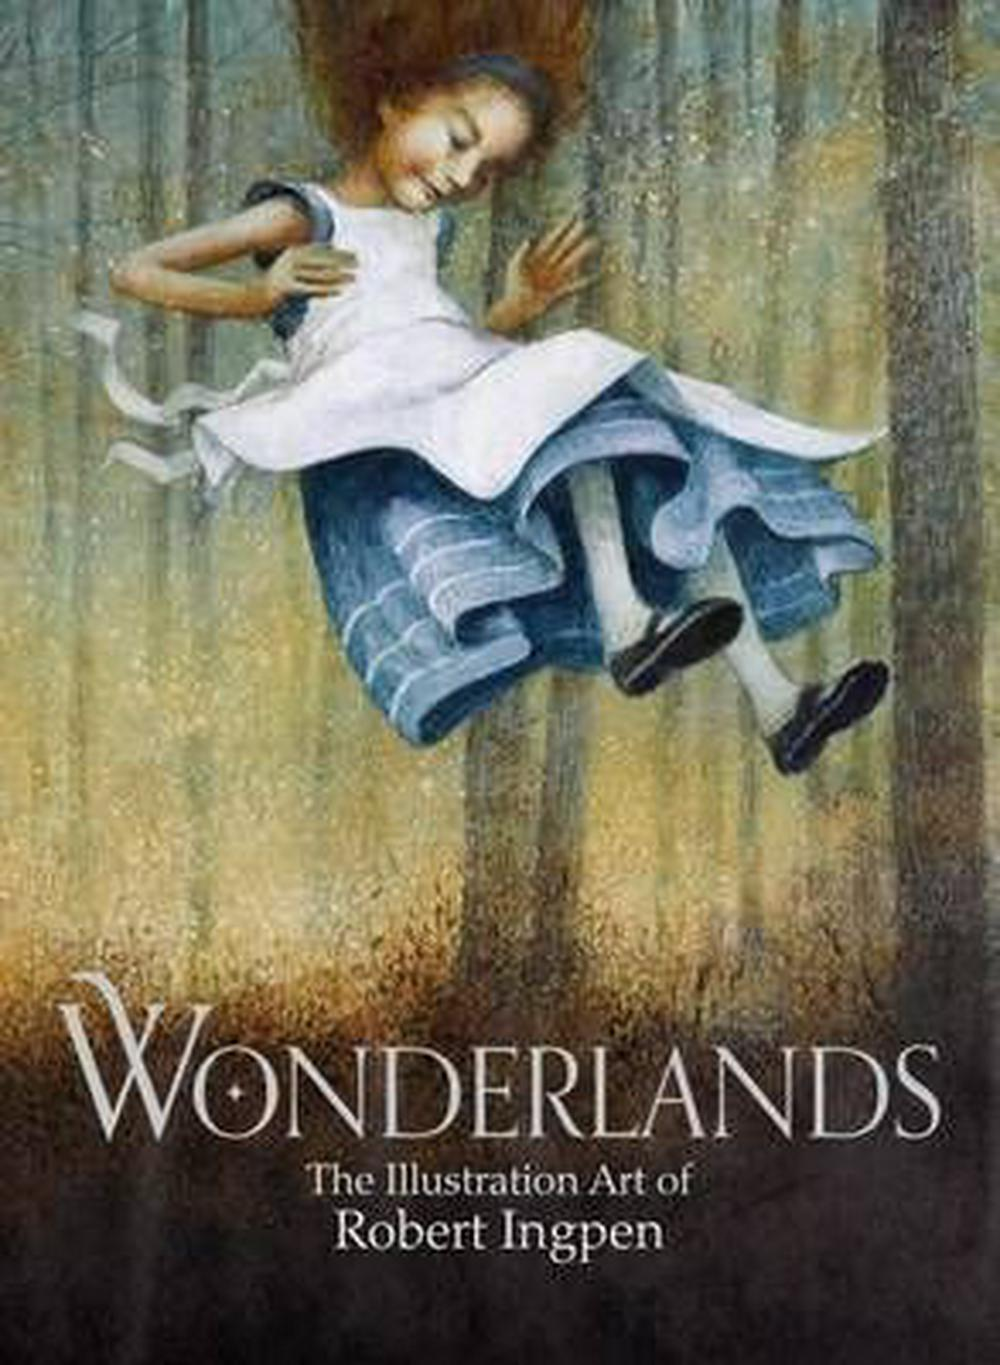 Wonderlands by Robert Ingpen, ISBN: 9780642278975